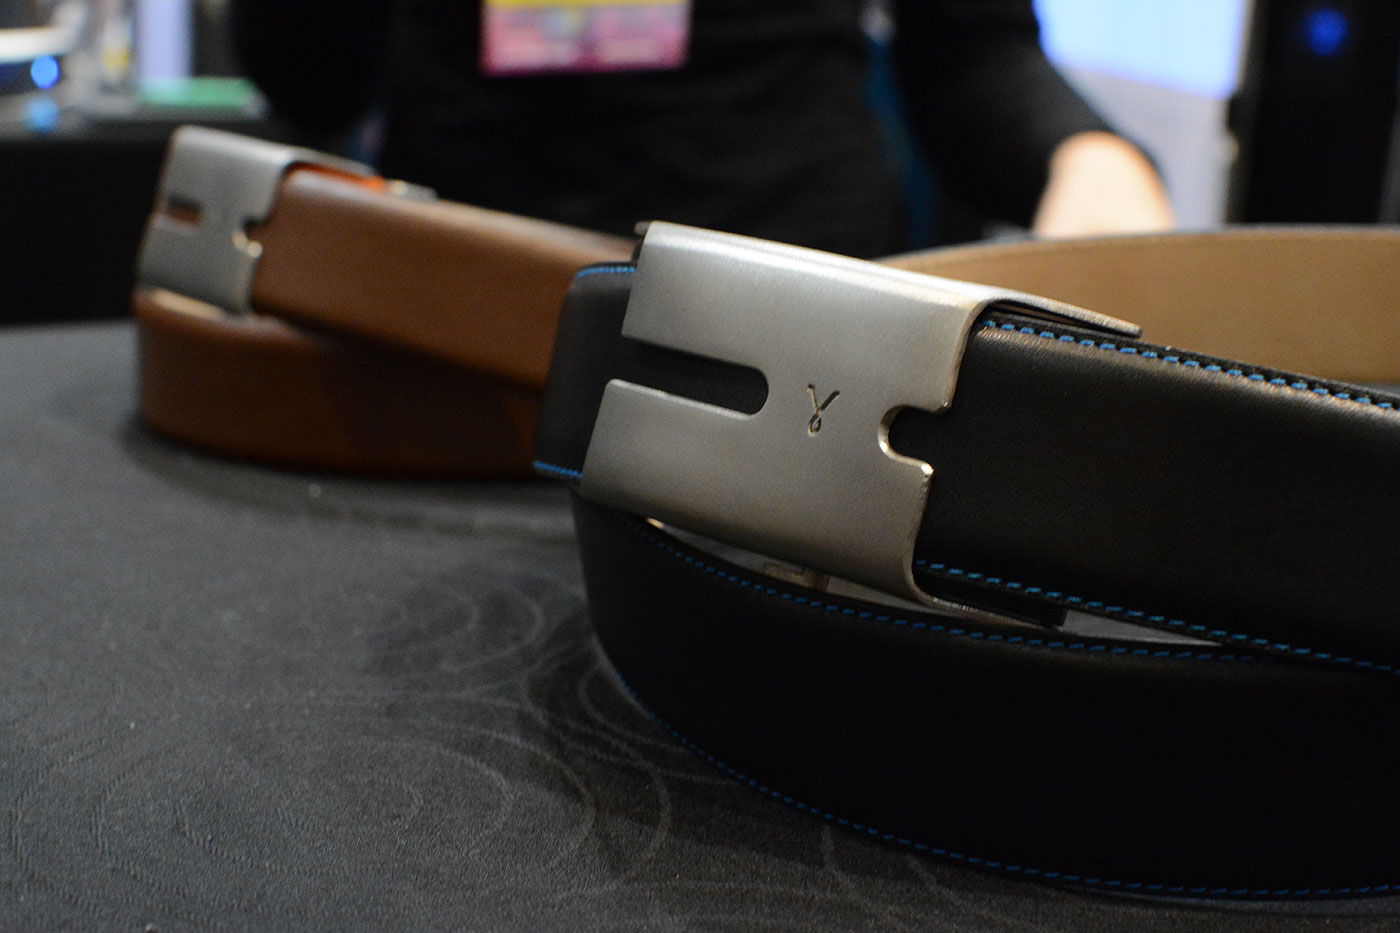 Belty the self-adjusting belt just got smarter and classier